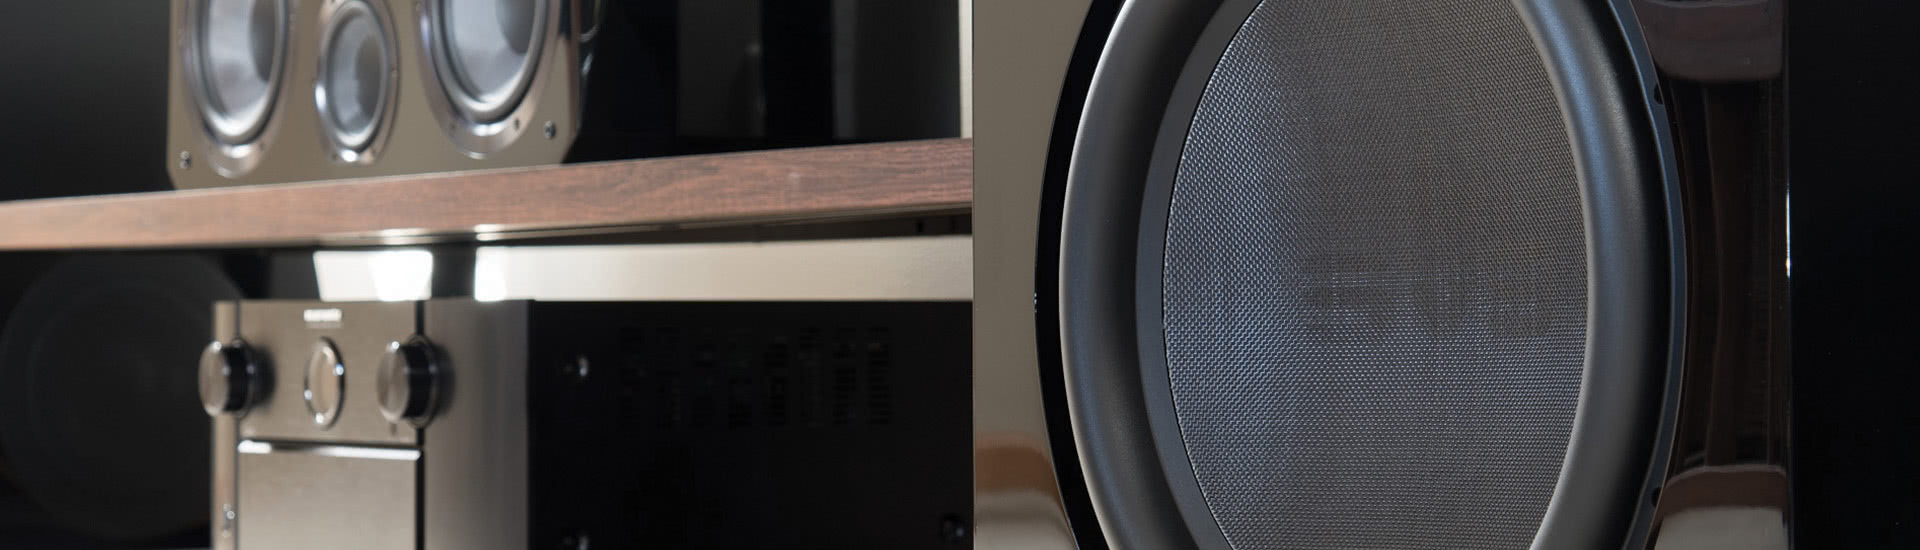 5 Things to Listen for When Choosing a Subwoofer